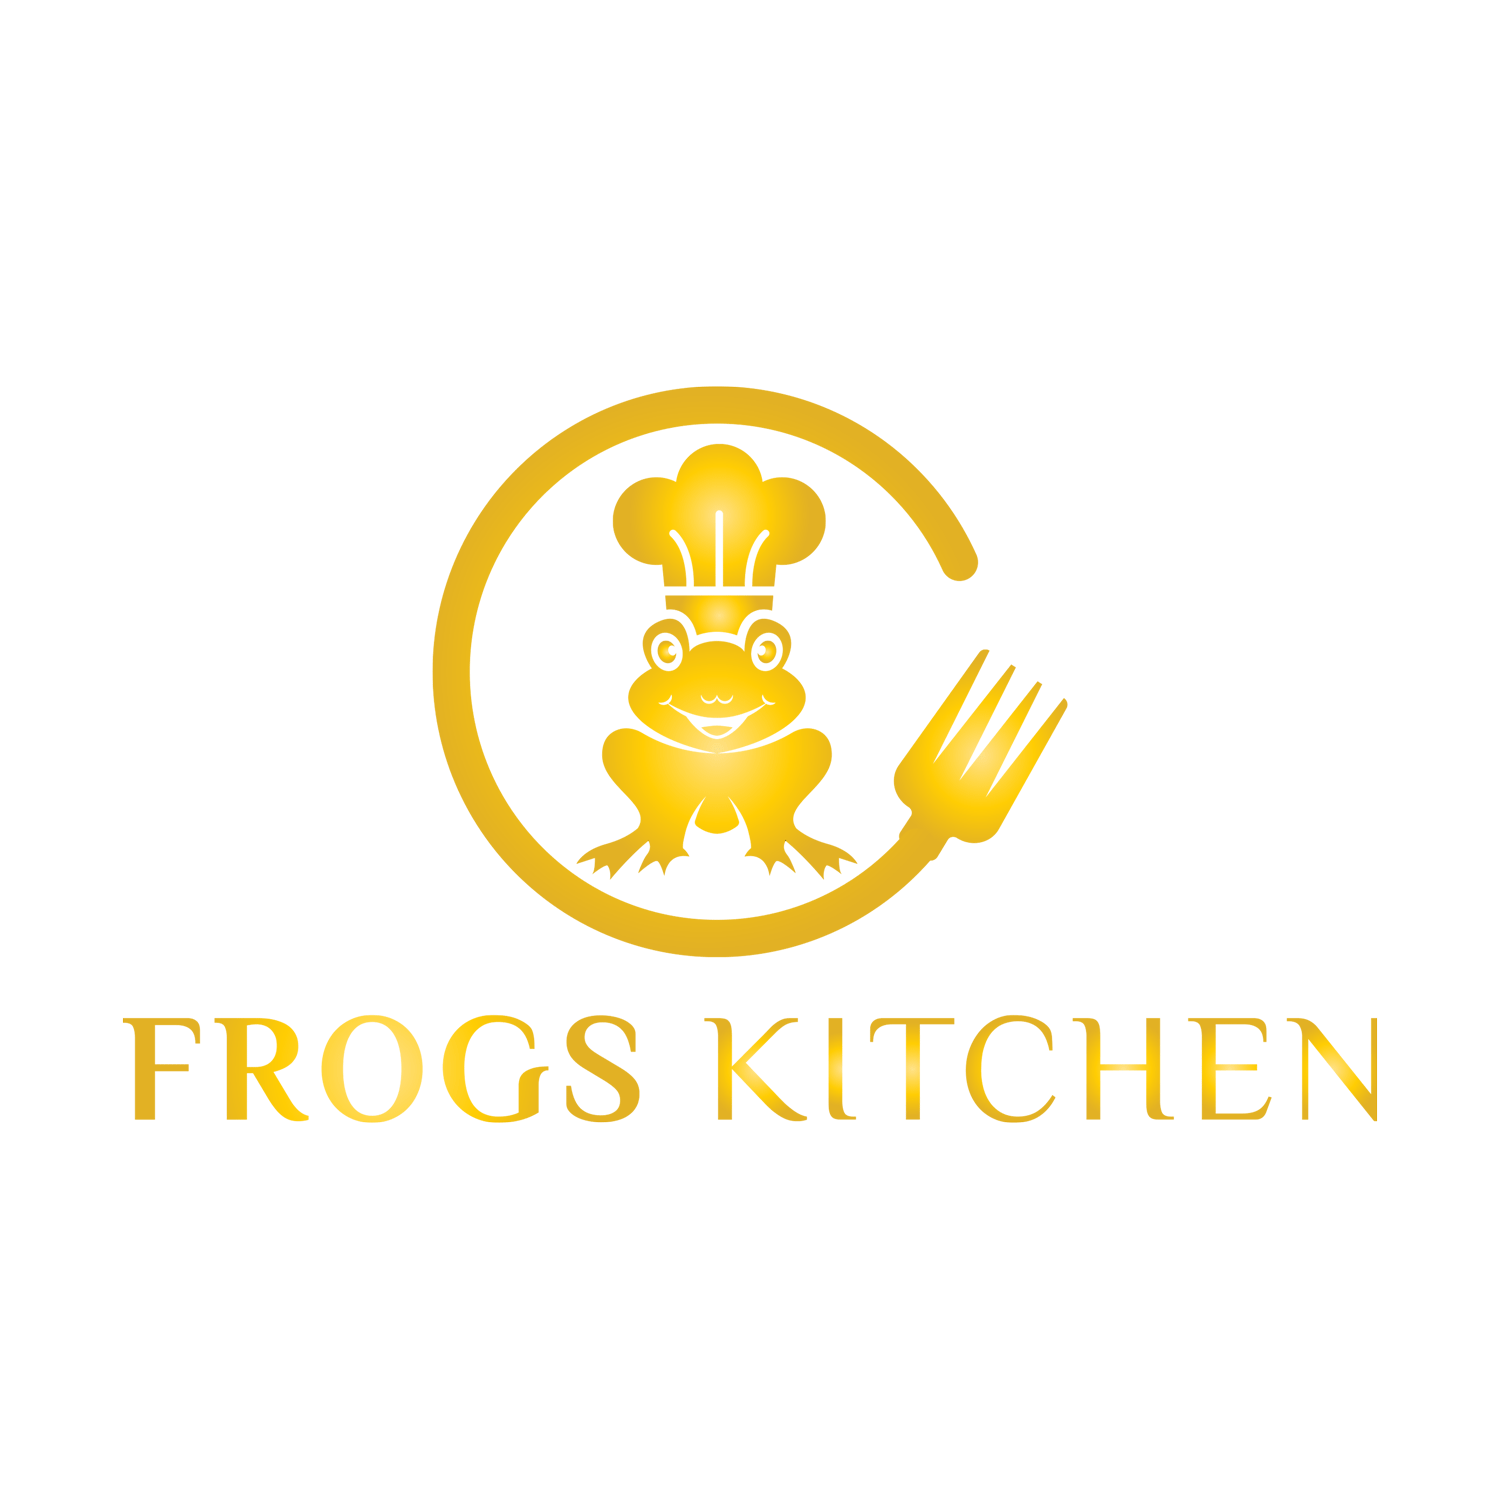 logo frogs kitchen doré